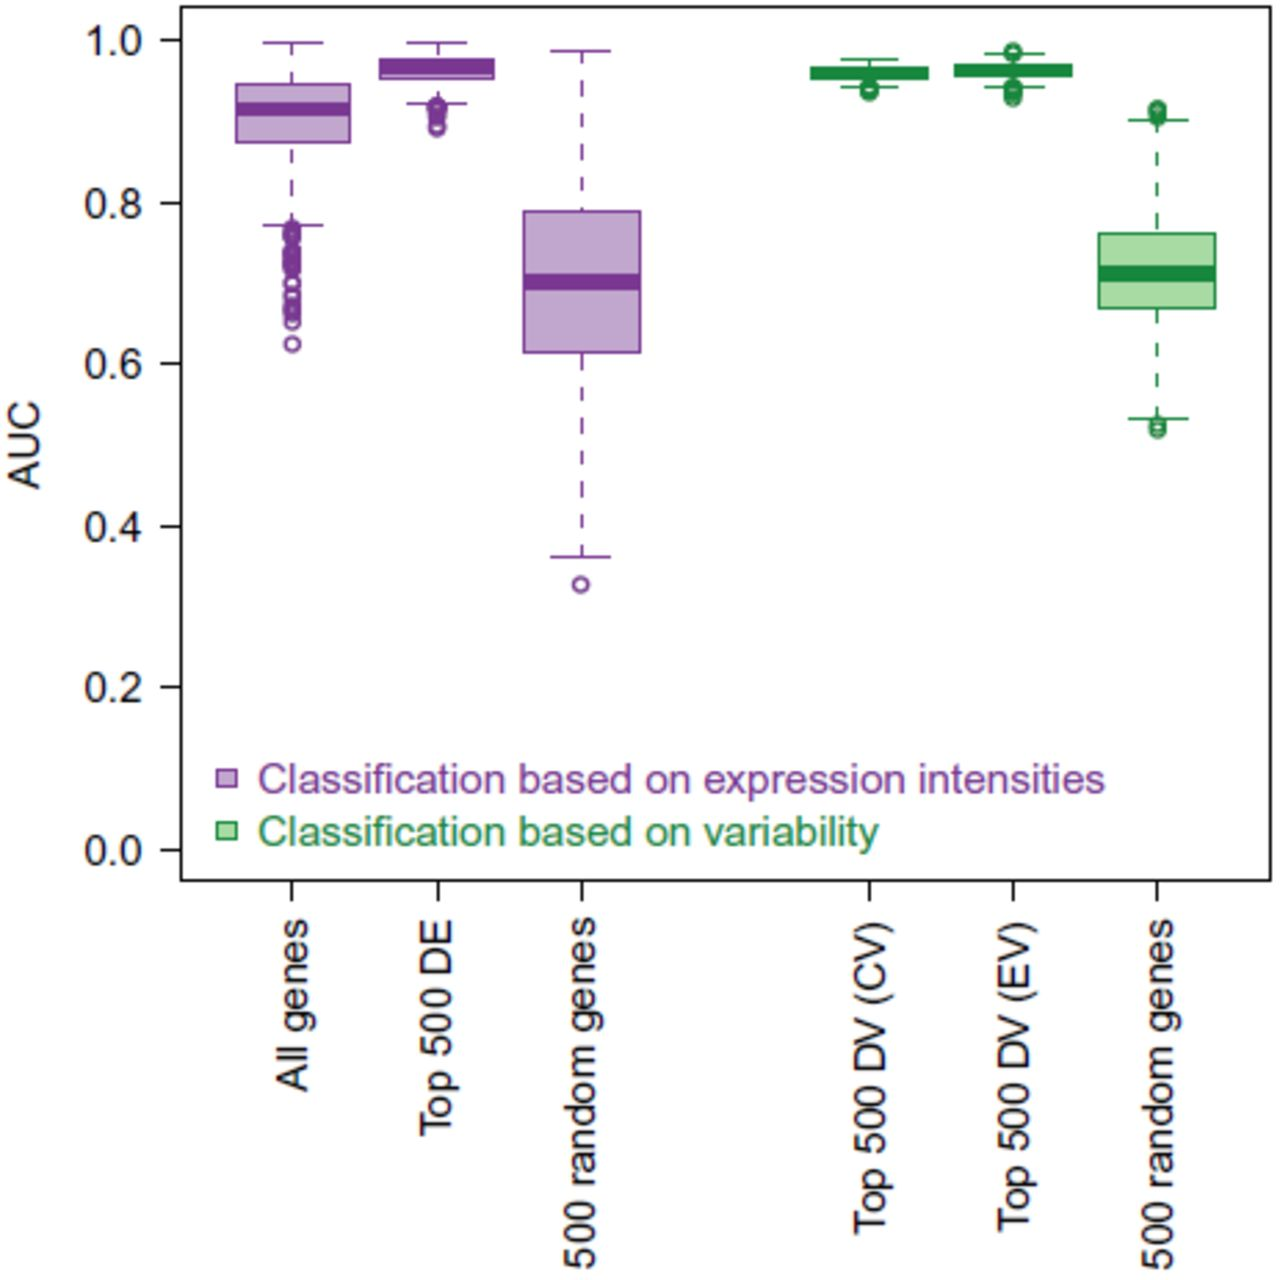 Higher gene expression variability in the more aggressive subtype of